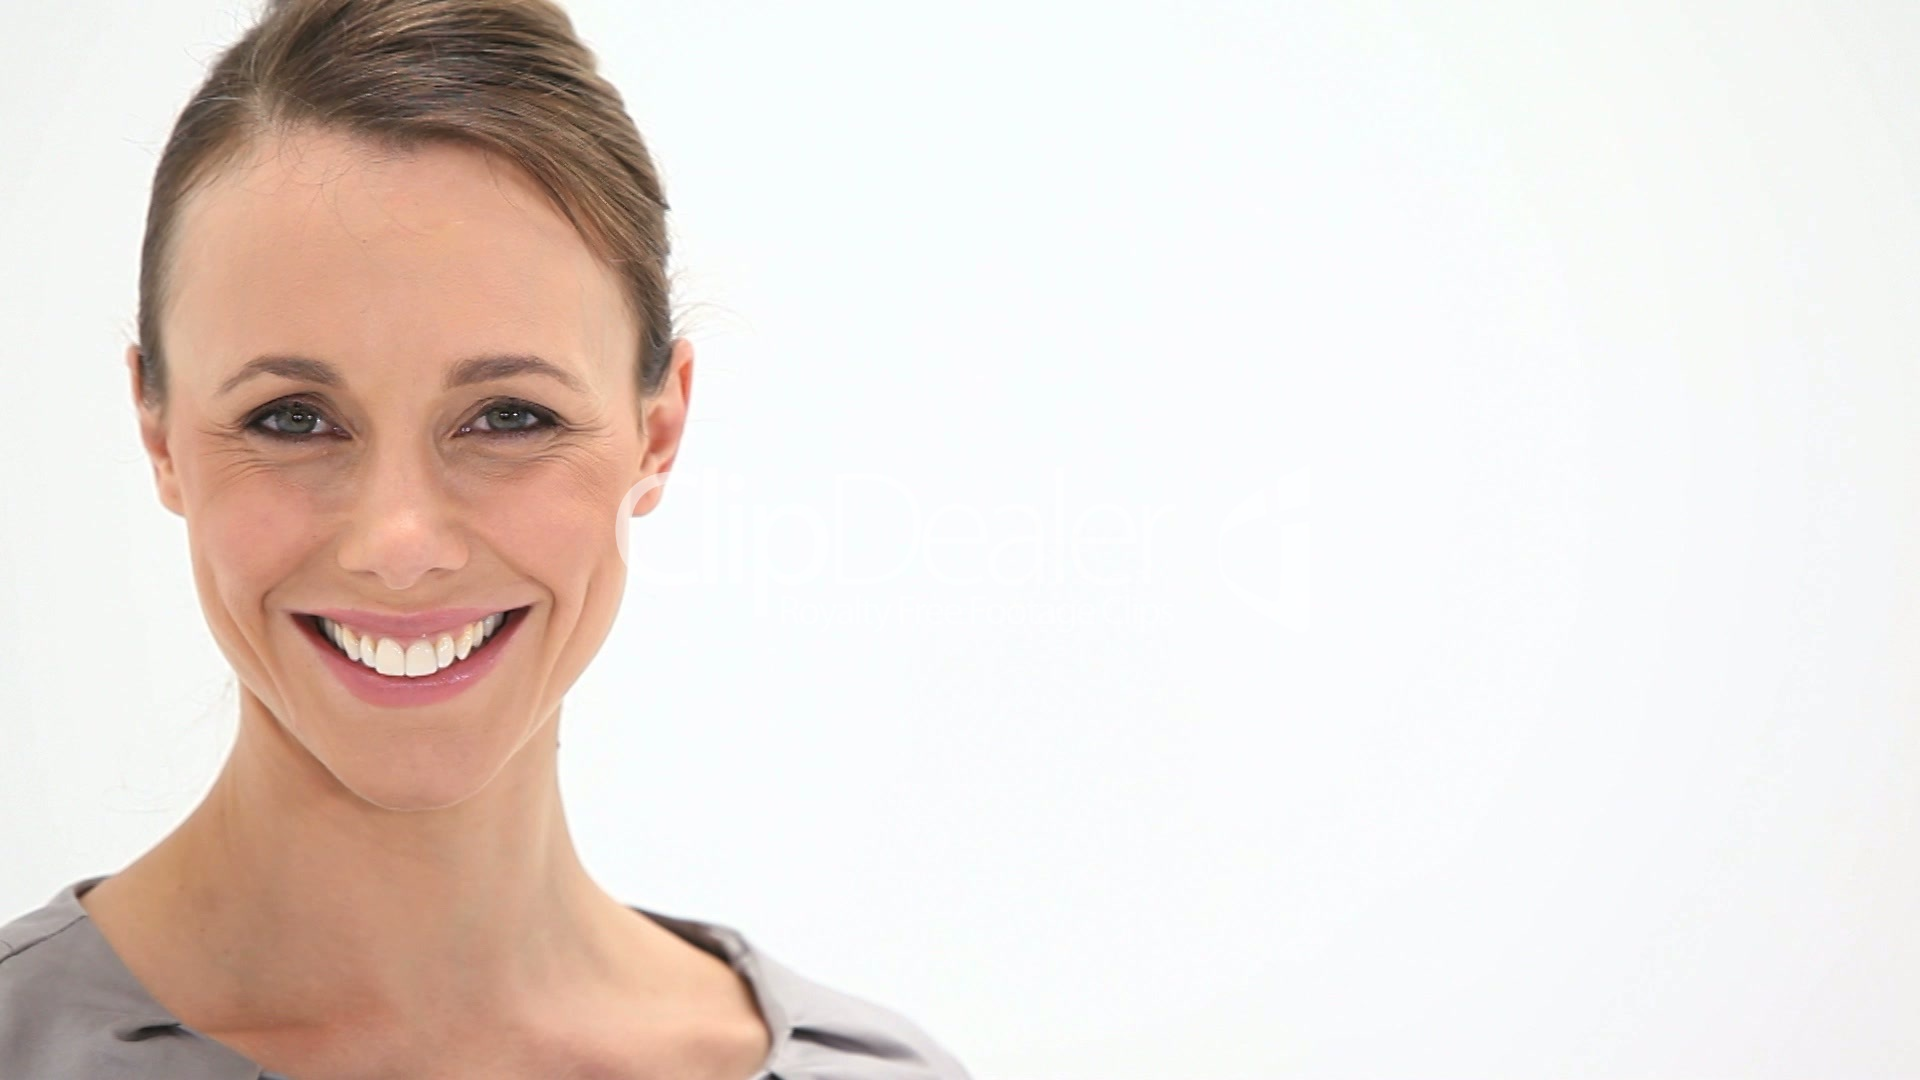 Smiling woman looking at camera: Royalty-free video and stock footage